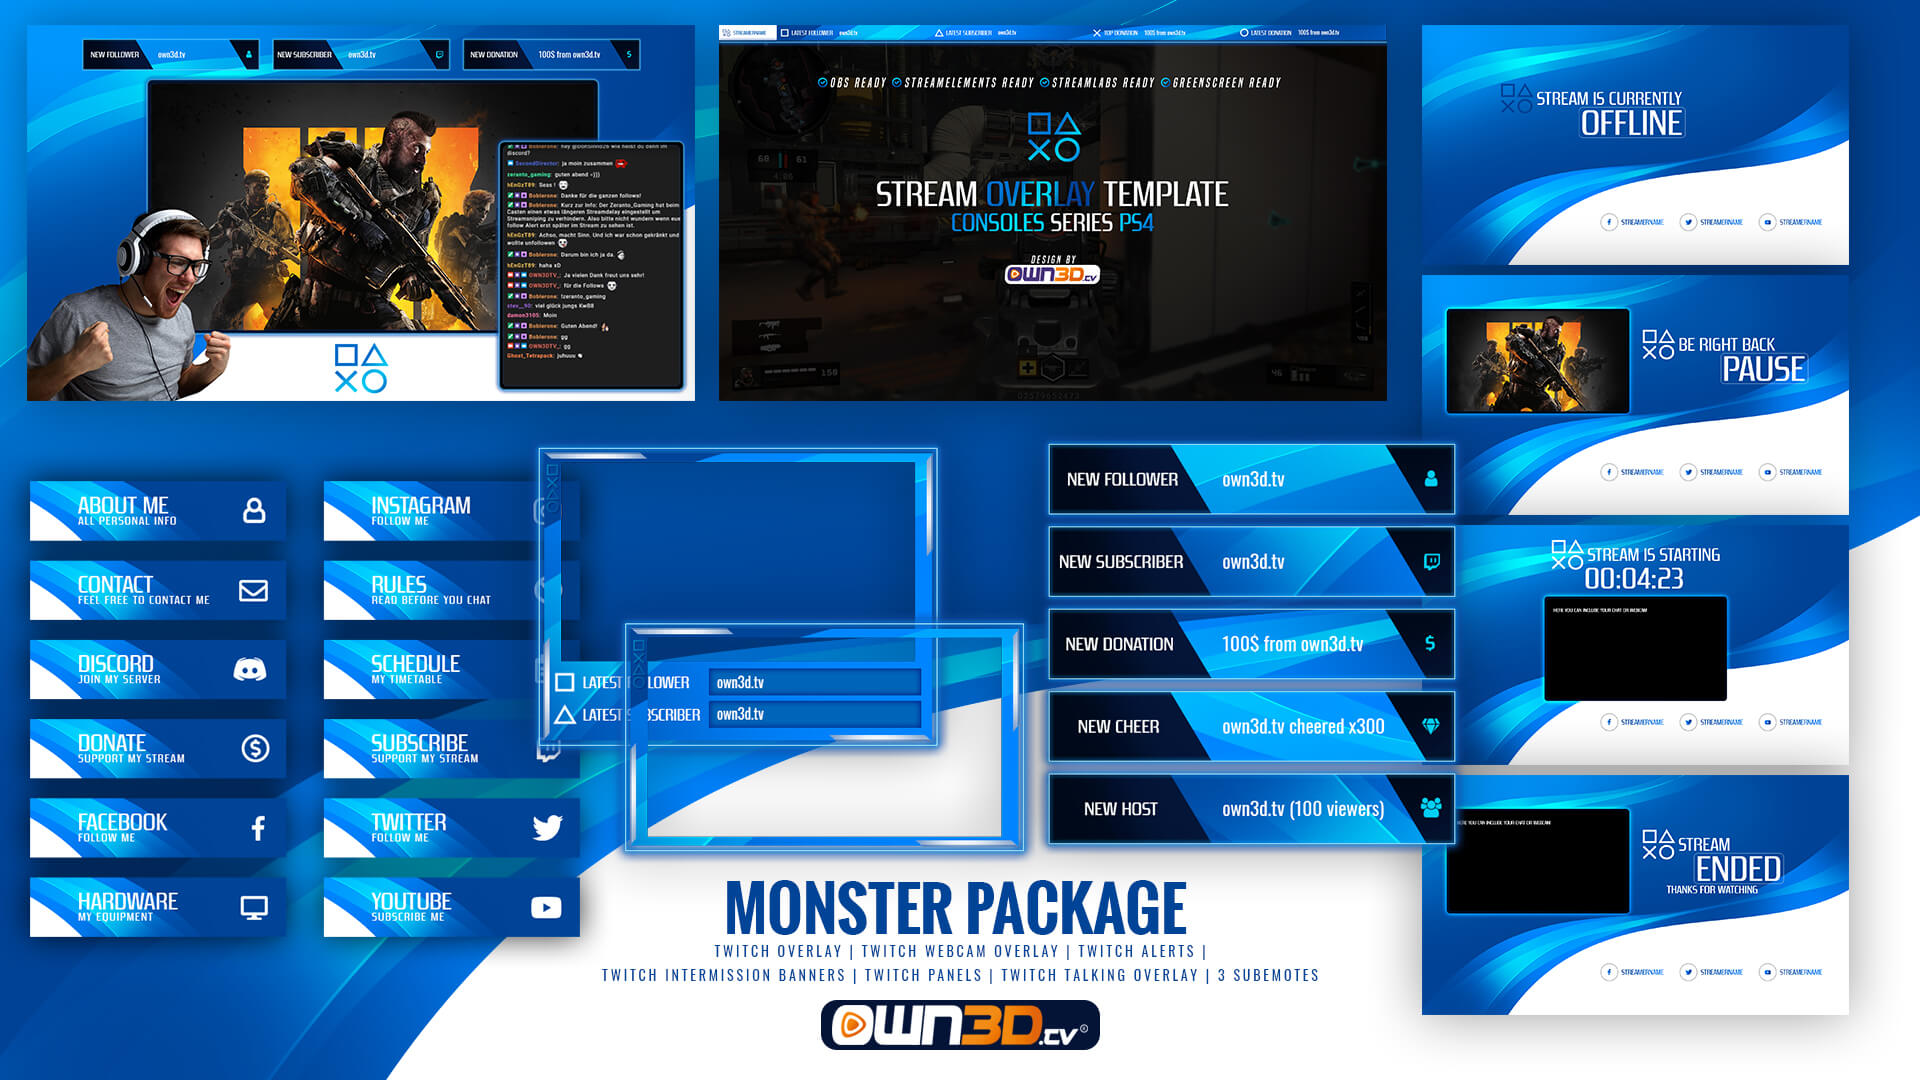 consoles-series-ps4-ALL-twitch-overlay-package-03-monster.jpg